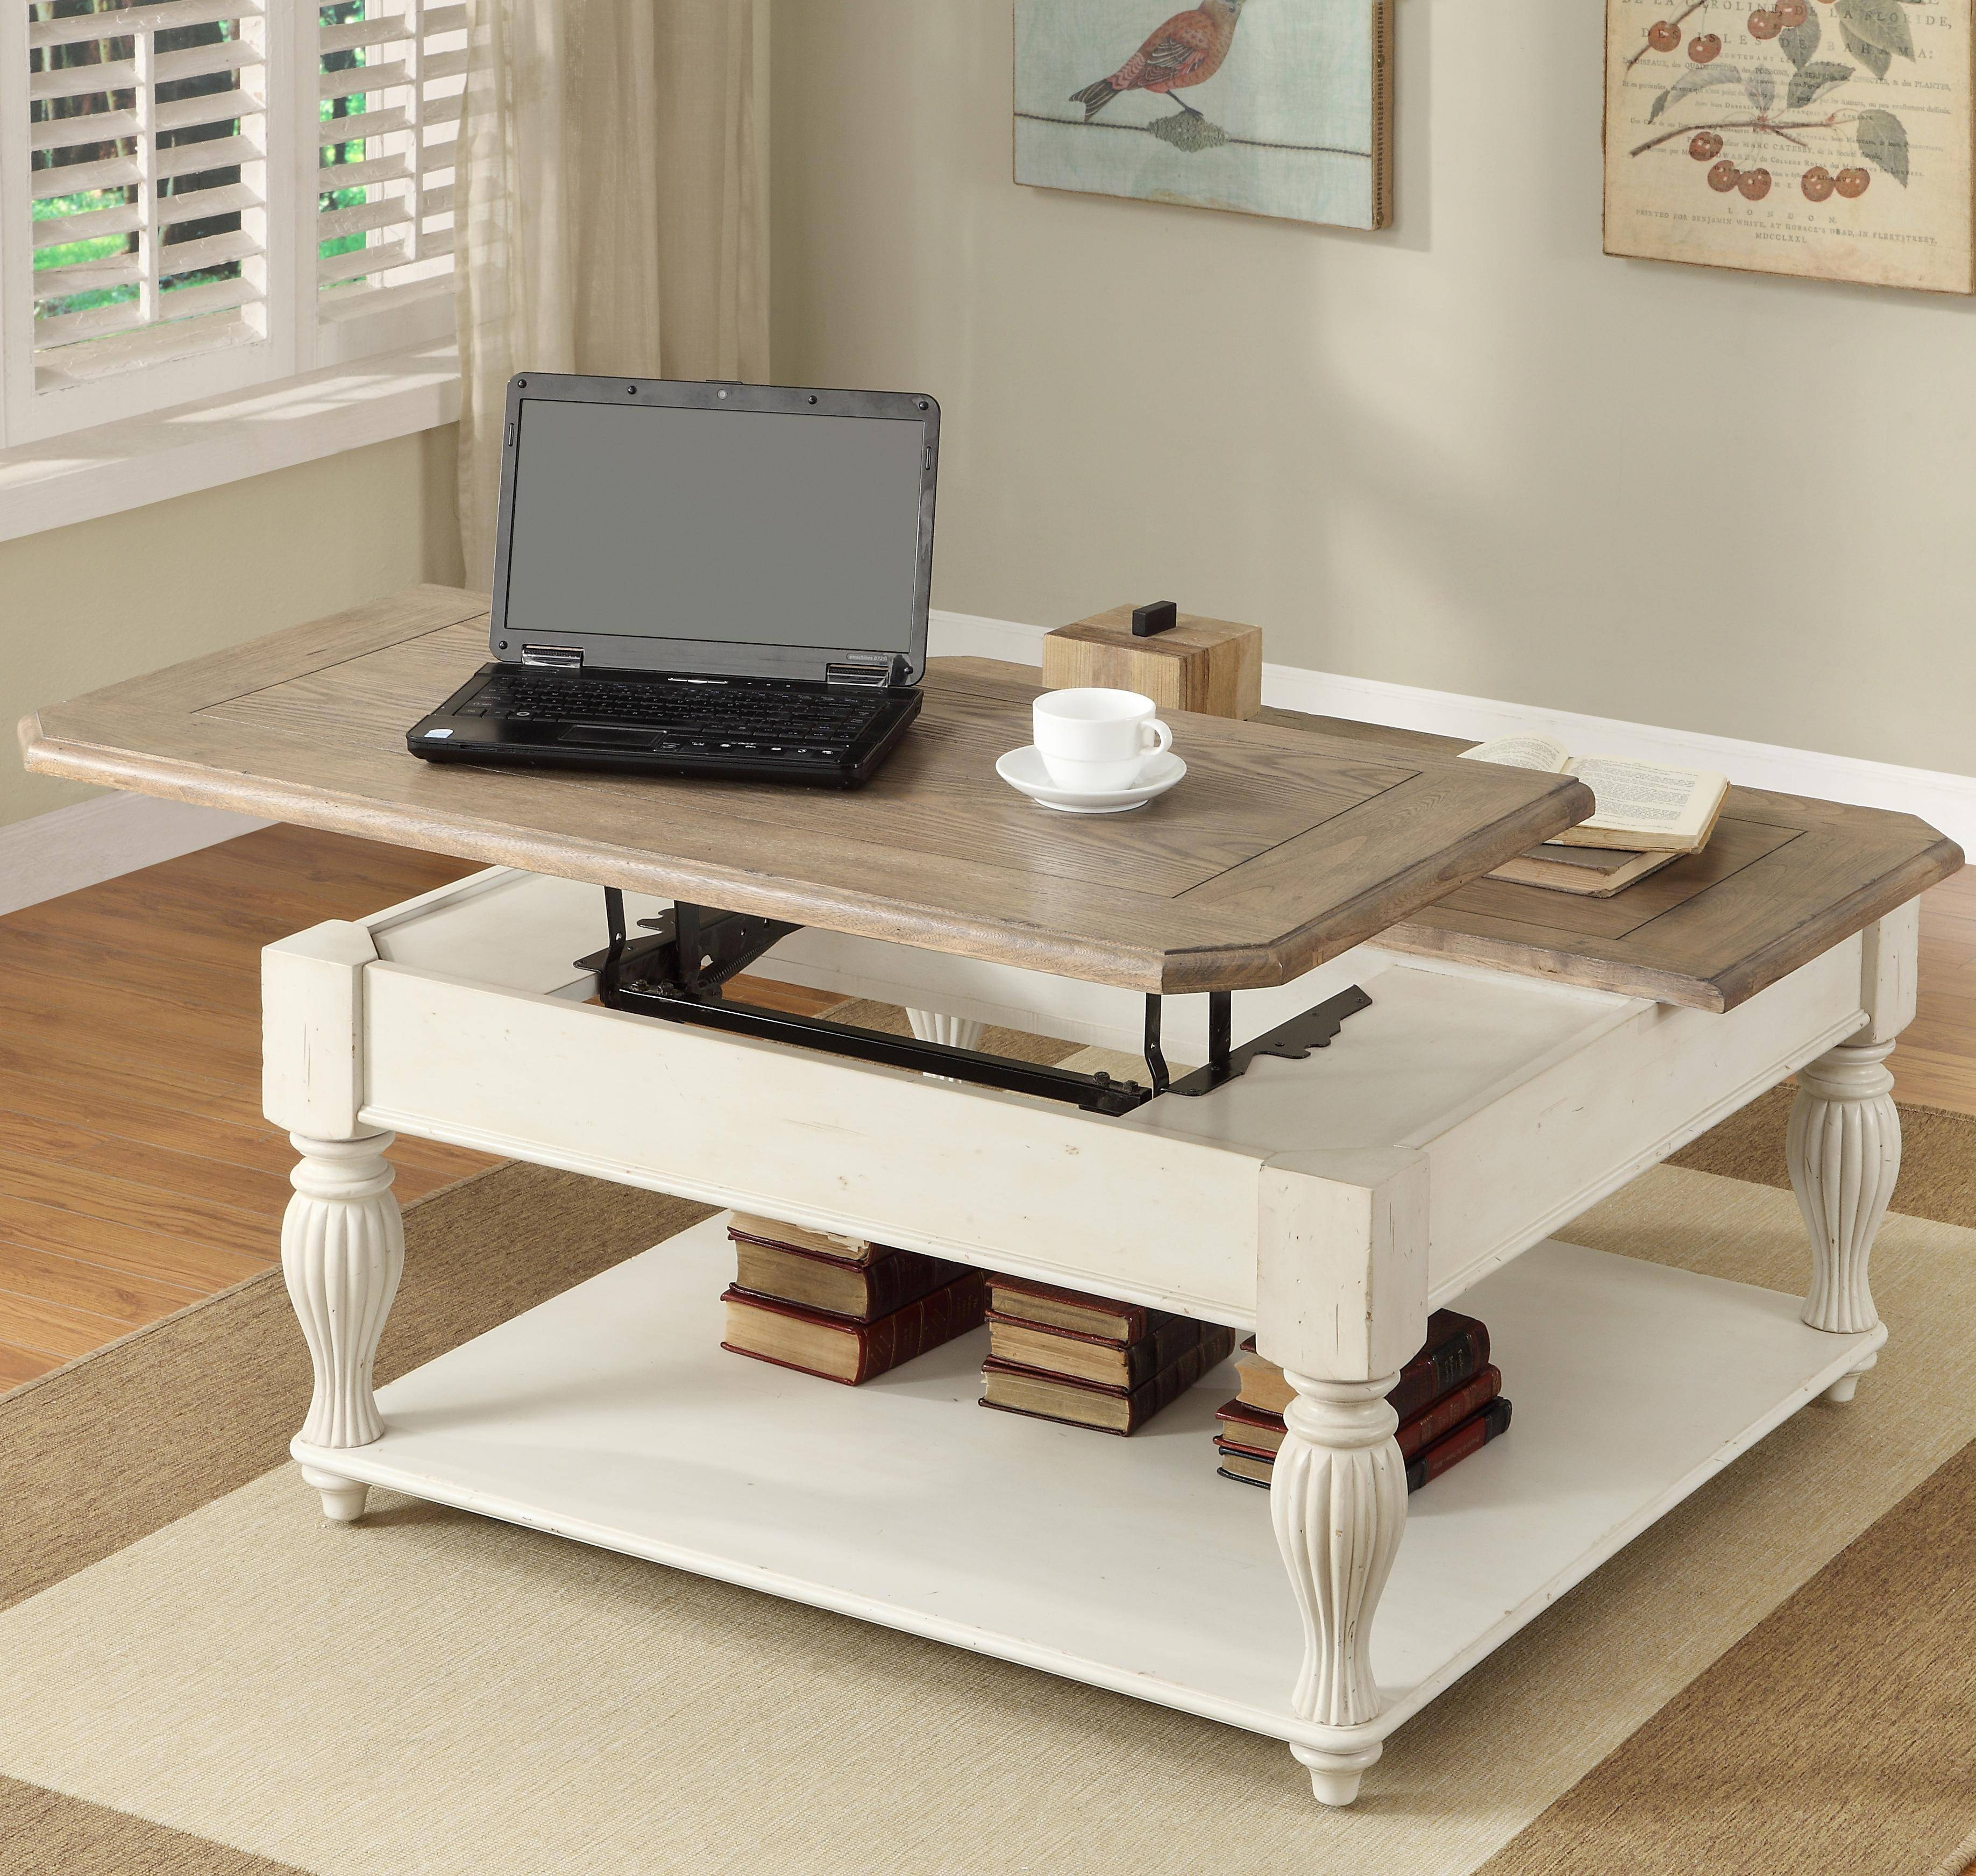 Coffee Table: Excellent Square Lift Top Coffee Table Designs Regarding Square Coffee Tables With Storages (View 7 of 30)